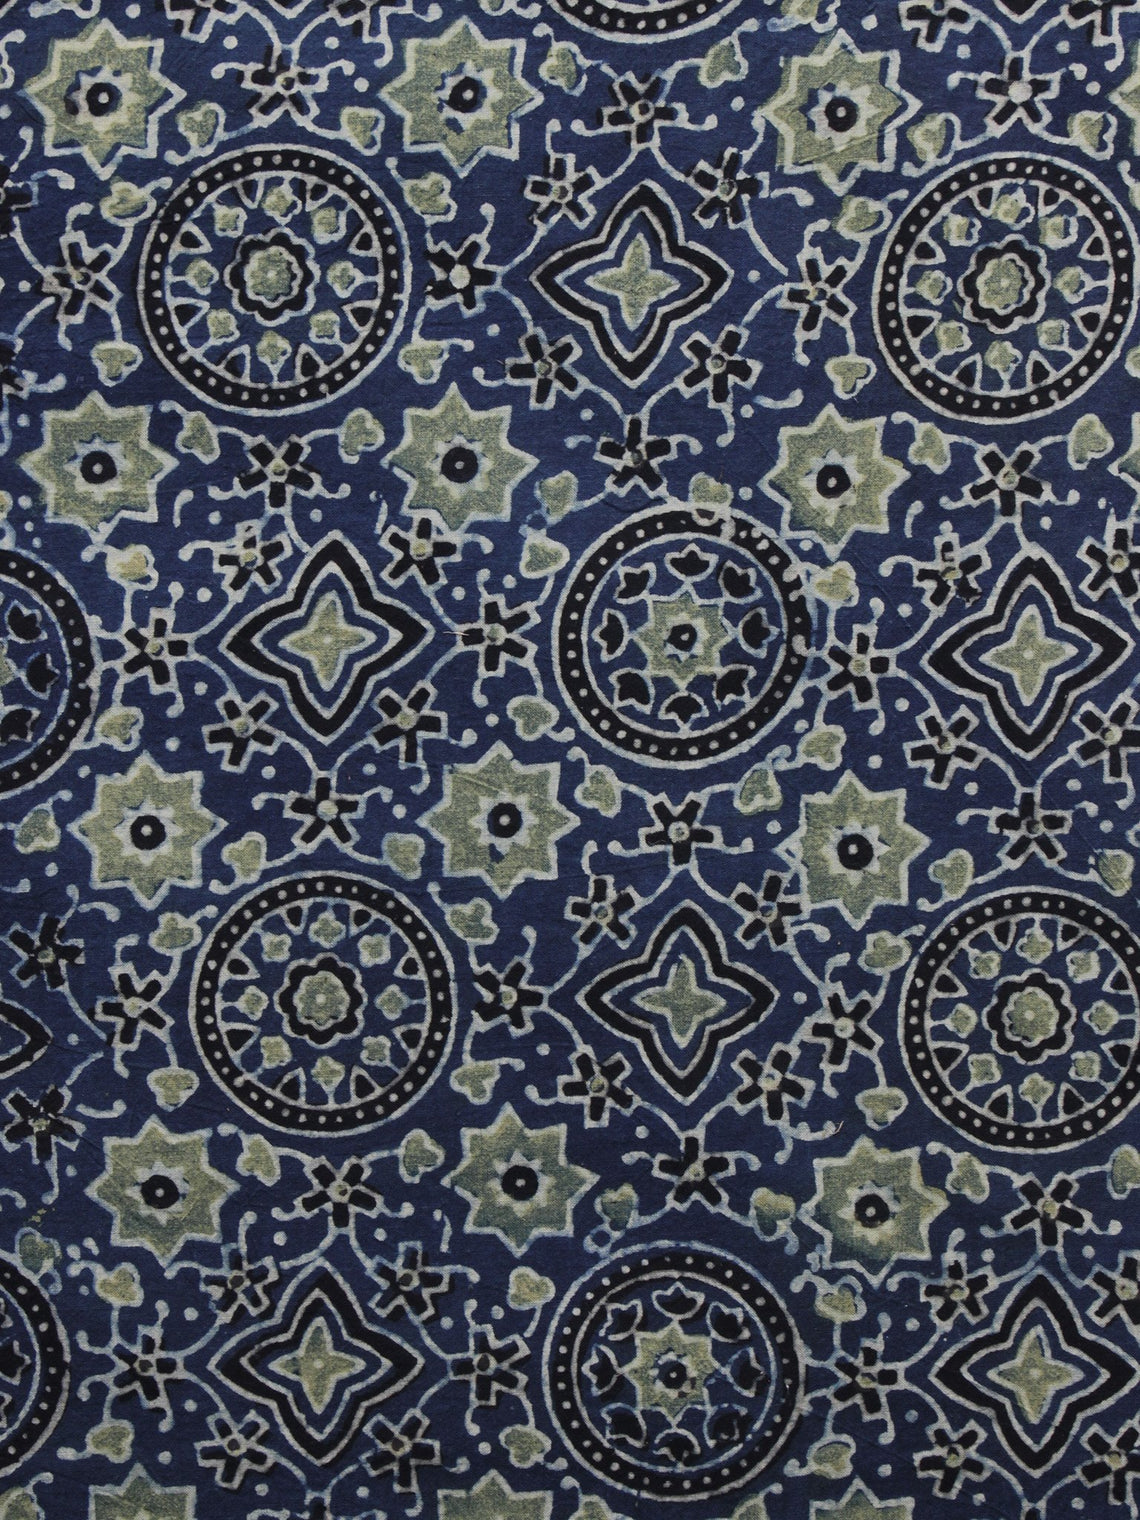 Blue Olive Green Black Ajrakh Printed Cotton Fabric Per Meter - F003F1199